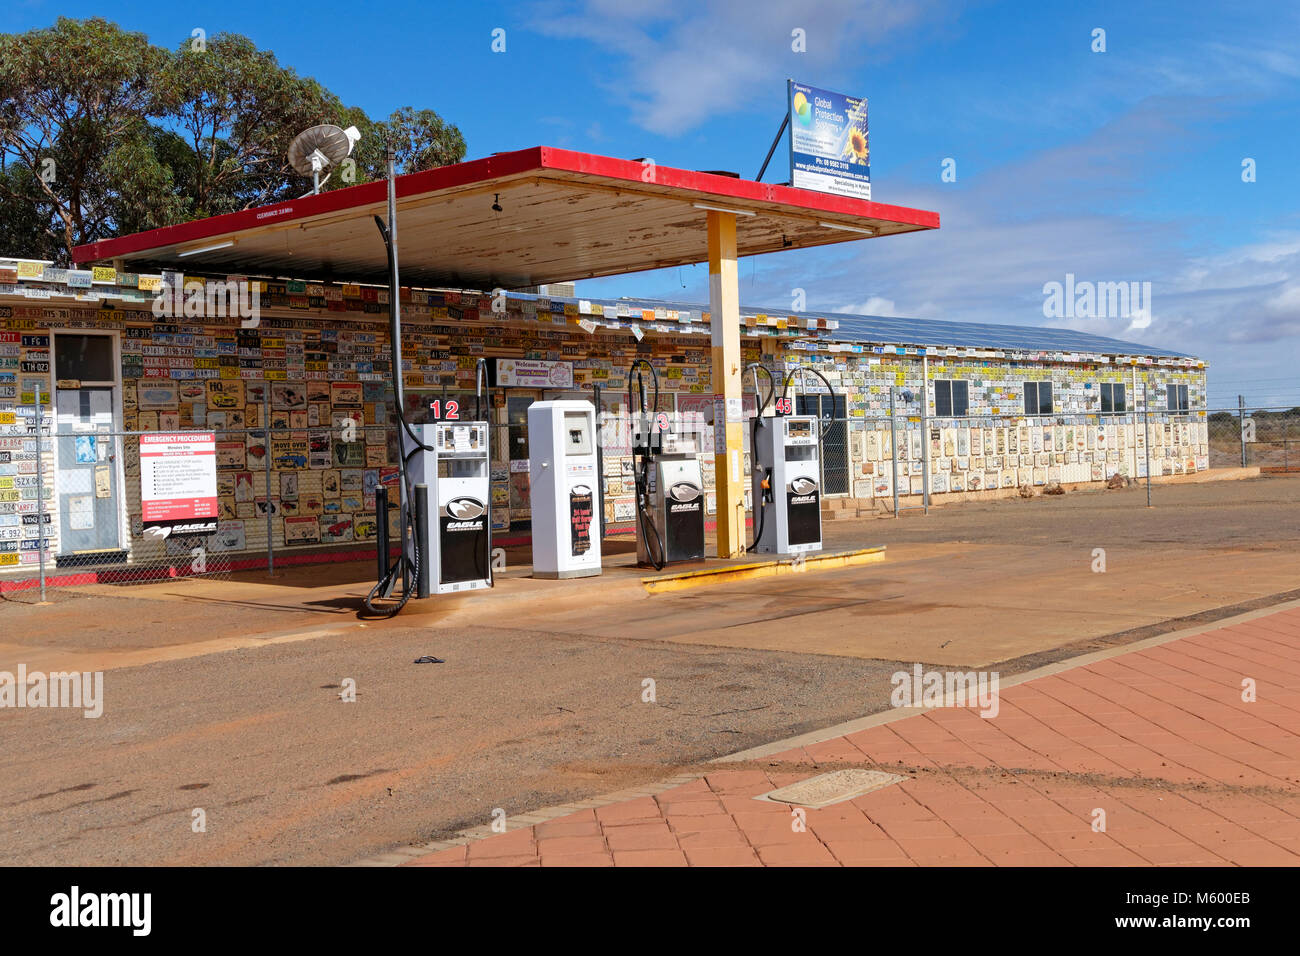 Fuel station with walls covered in car number plates and Australian Memorabilia, Menzies, Murchison, Western Australia - Stock Image